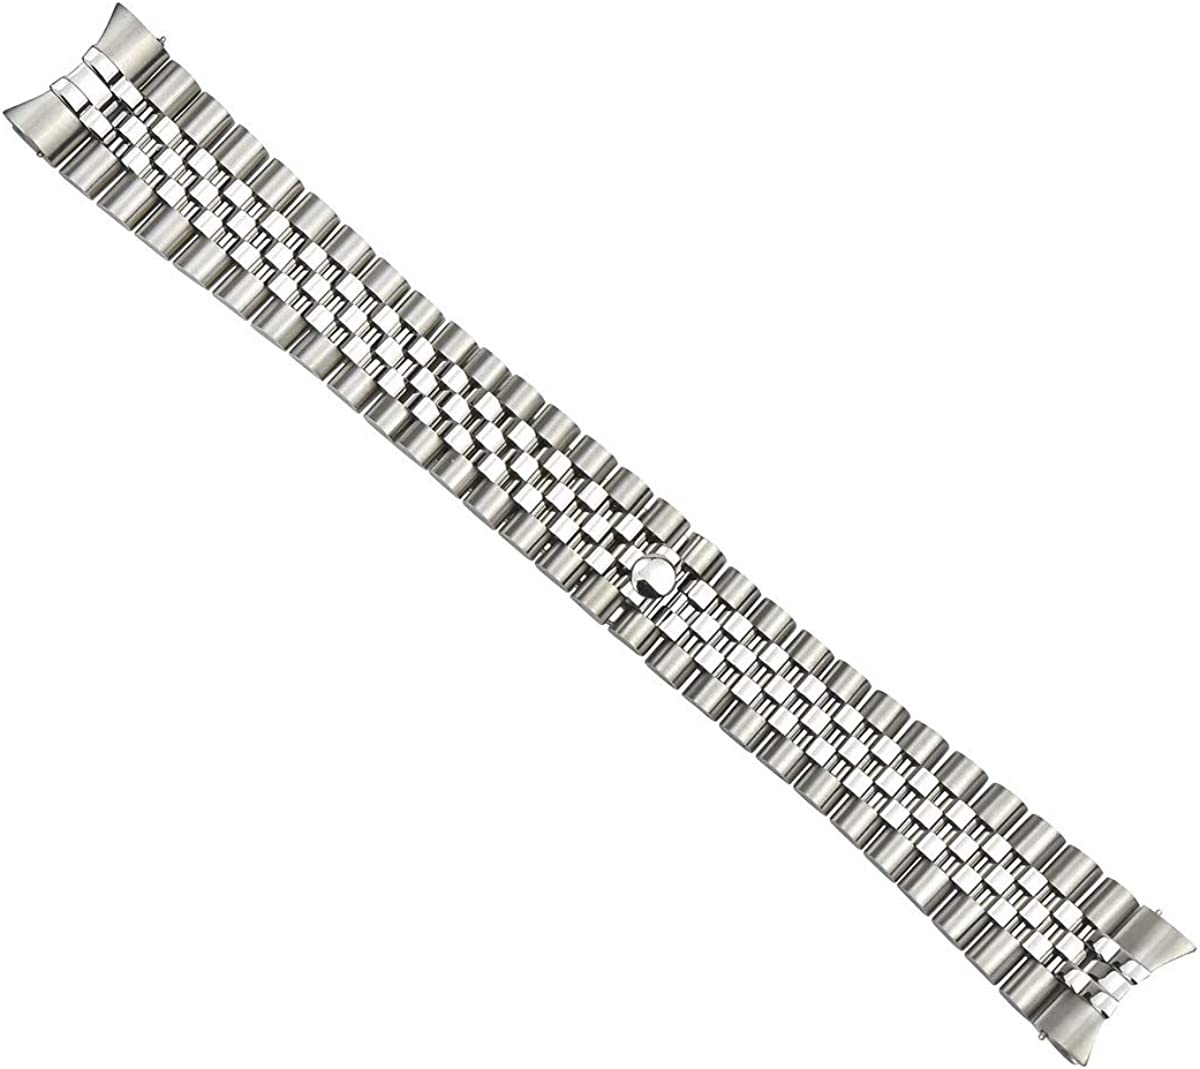 21mm Jubilee Watch Band Compatible with 41mm 41 Max 64% OFF Or San Jose Mall Datejus Rolex